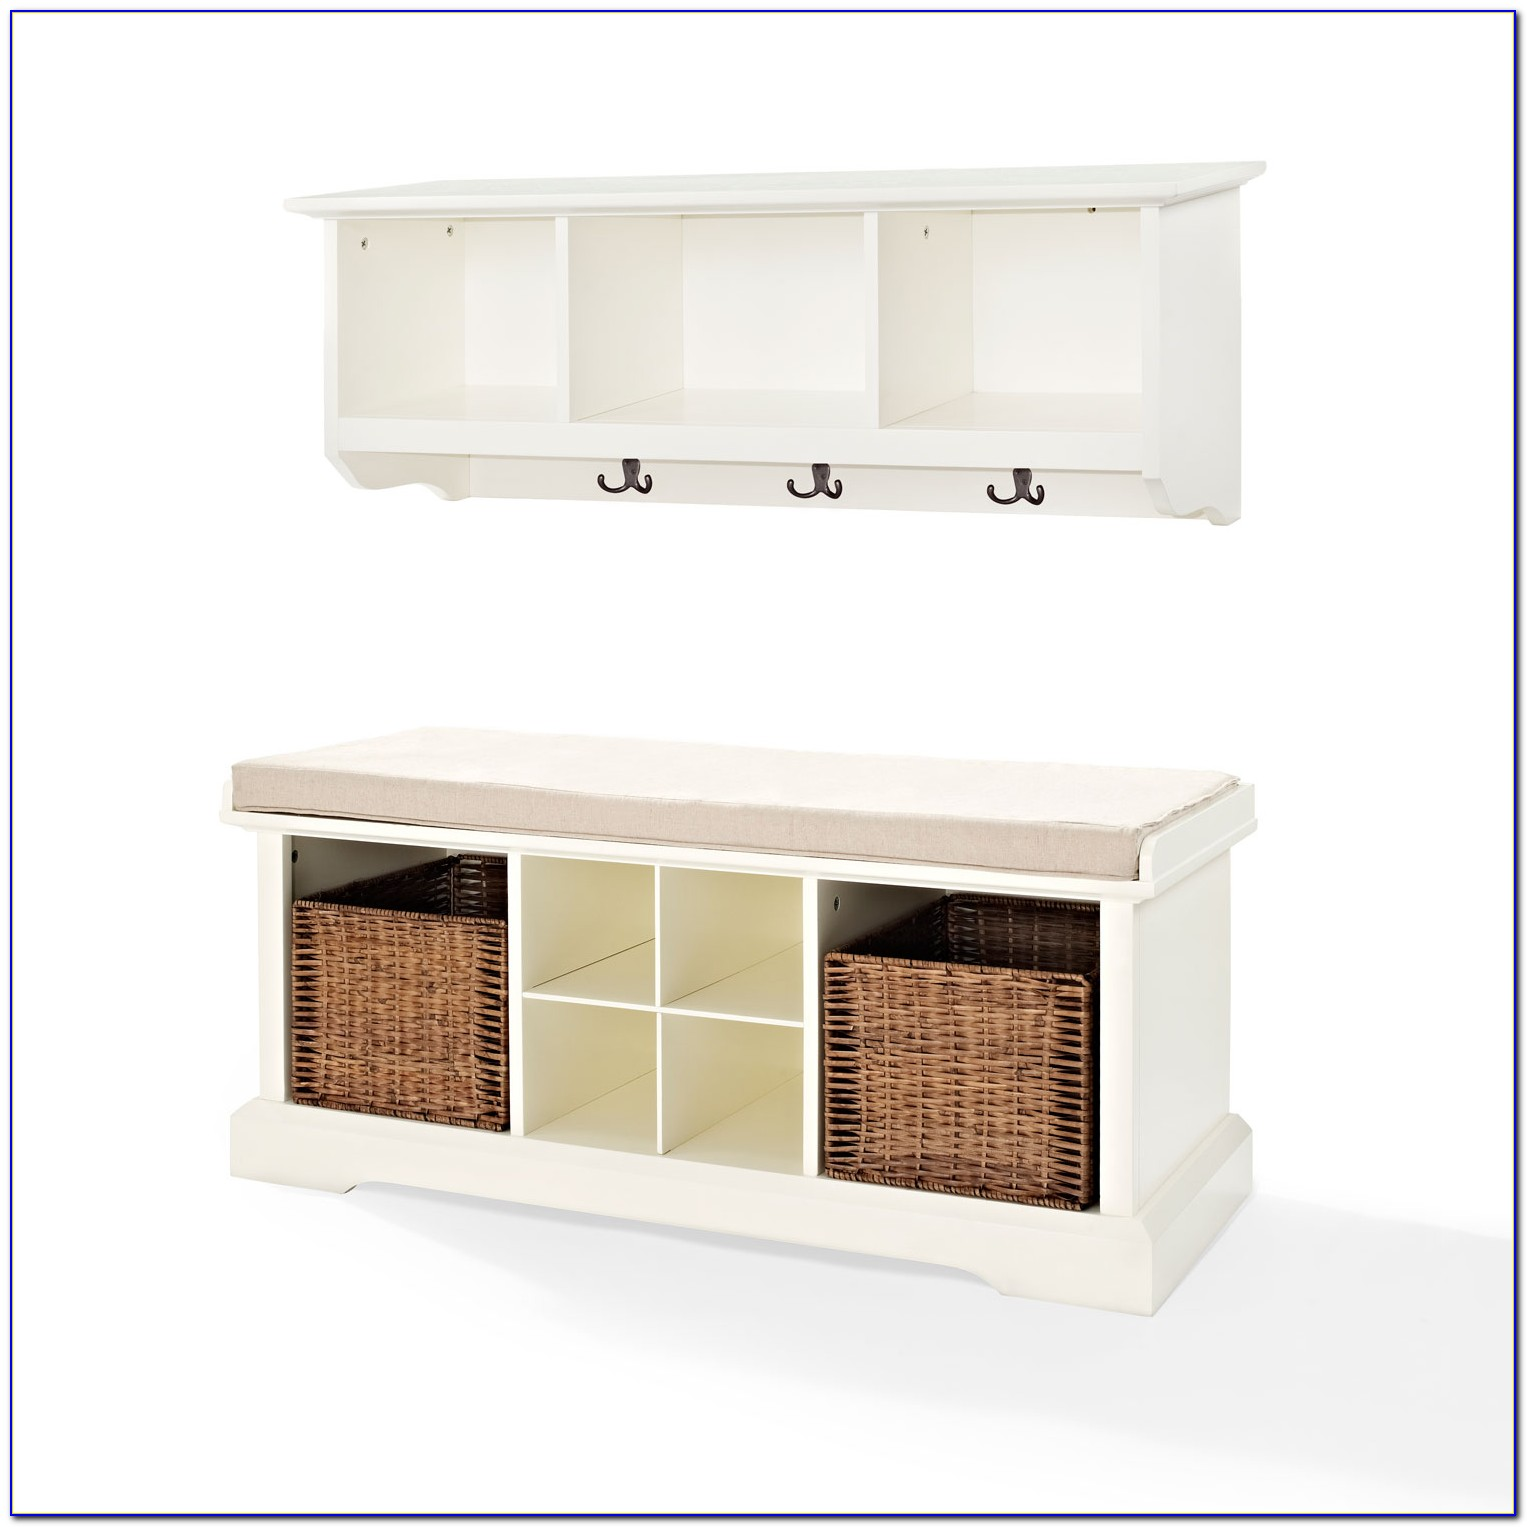 Entryway Bench And Shelf Set White